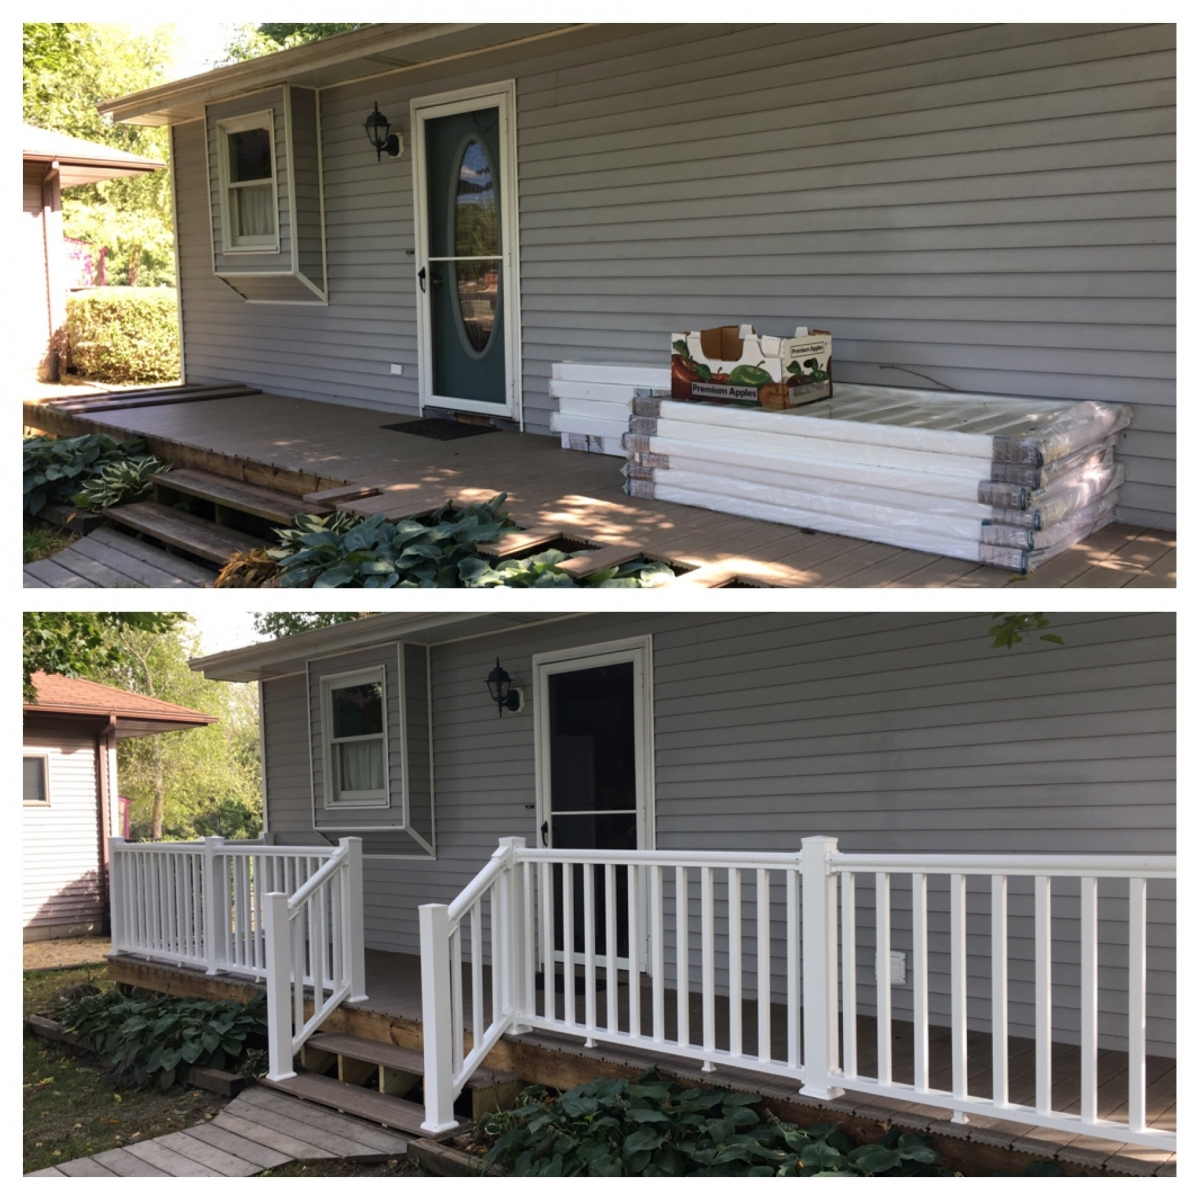 Before and after- new composite material deck